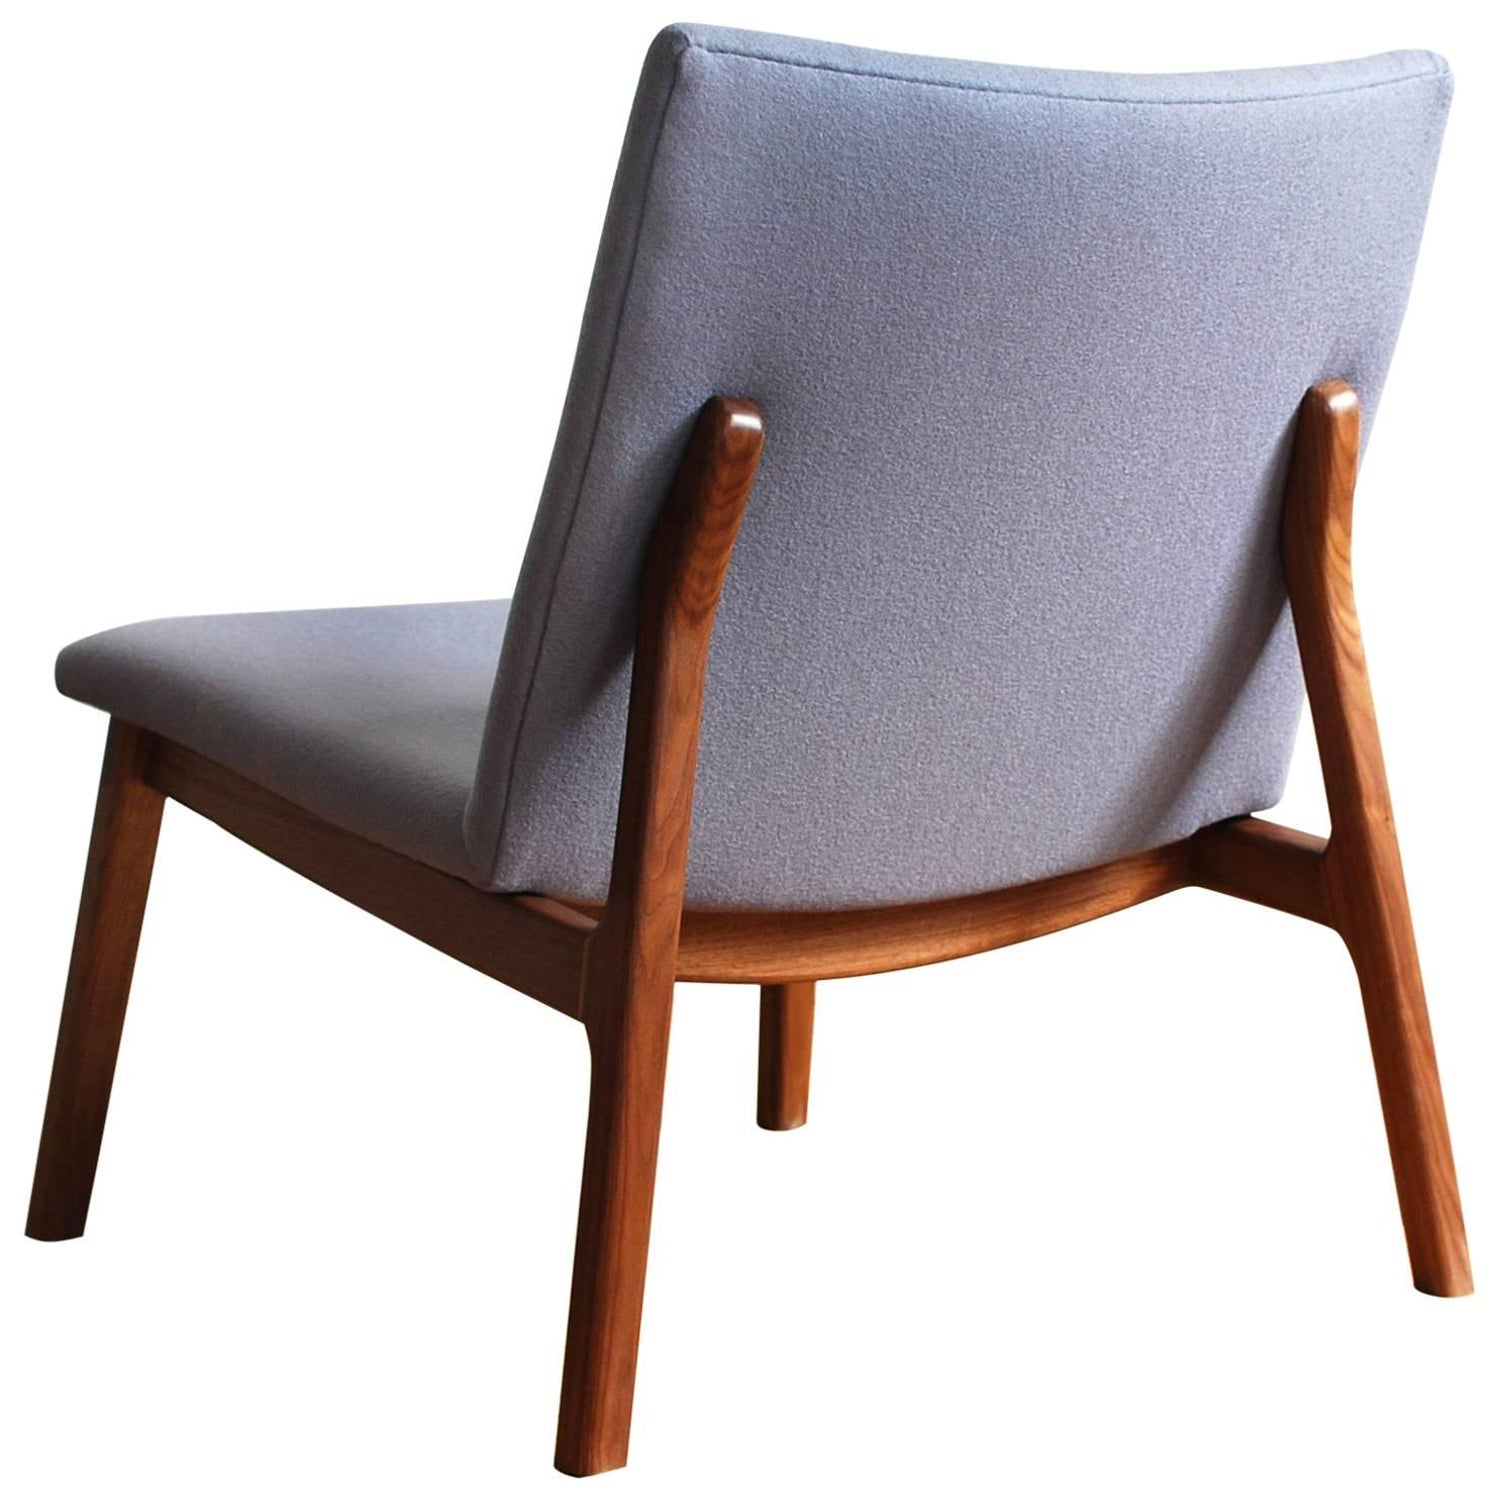 C07 handmade upholstered lounge chair in solid walnut by jason lewis furniture for sale at 1stdibs